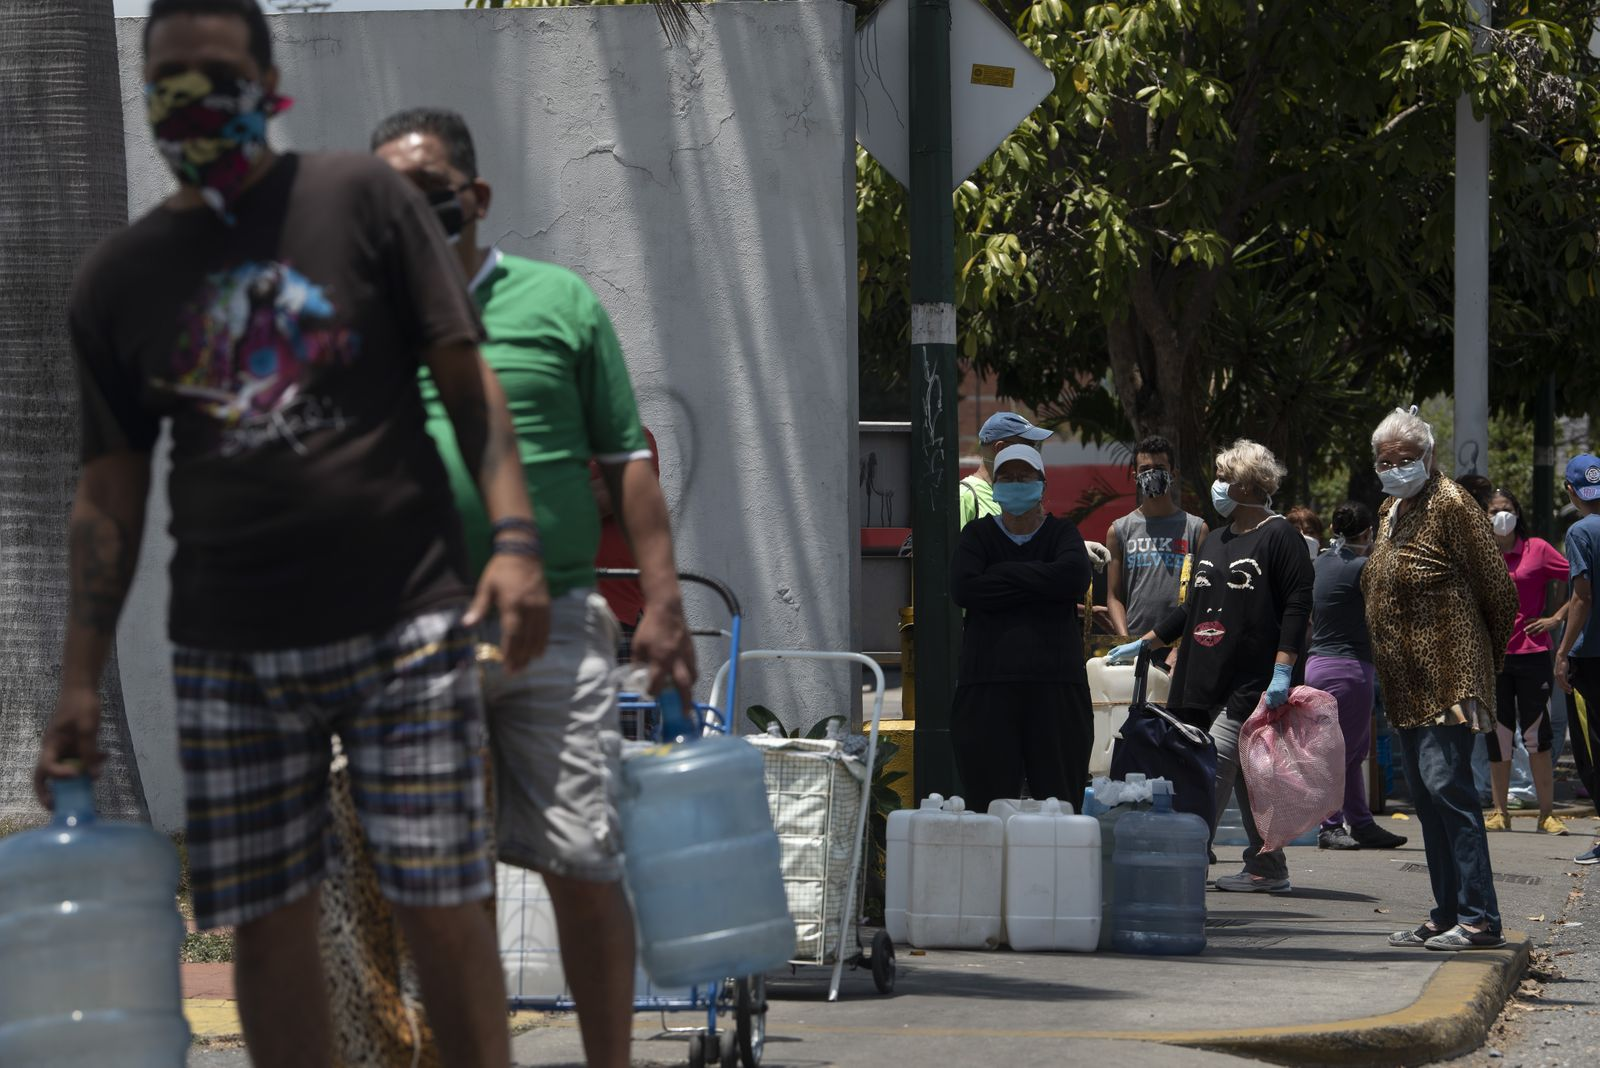 Gas Pumps To Close And People Search For Water Amid Viral Outbreak Growth In Venezuela